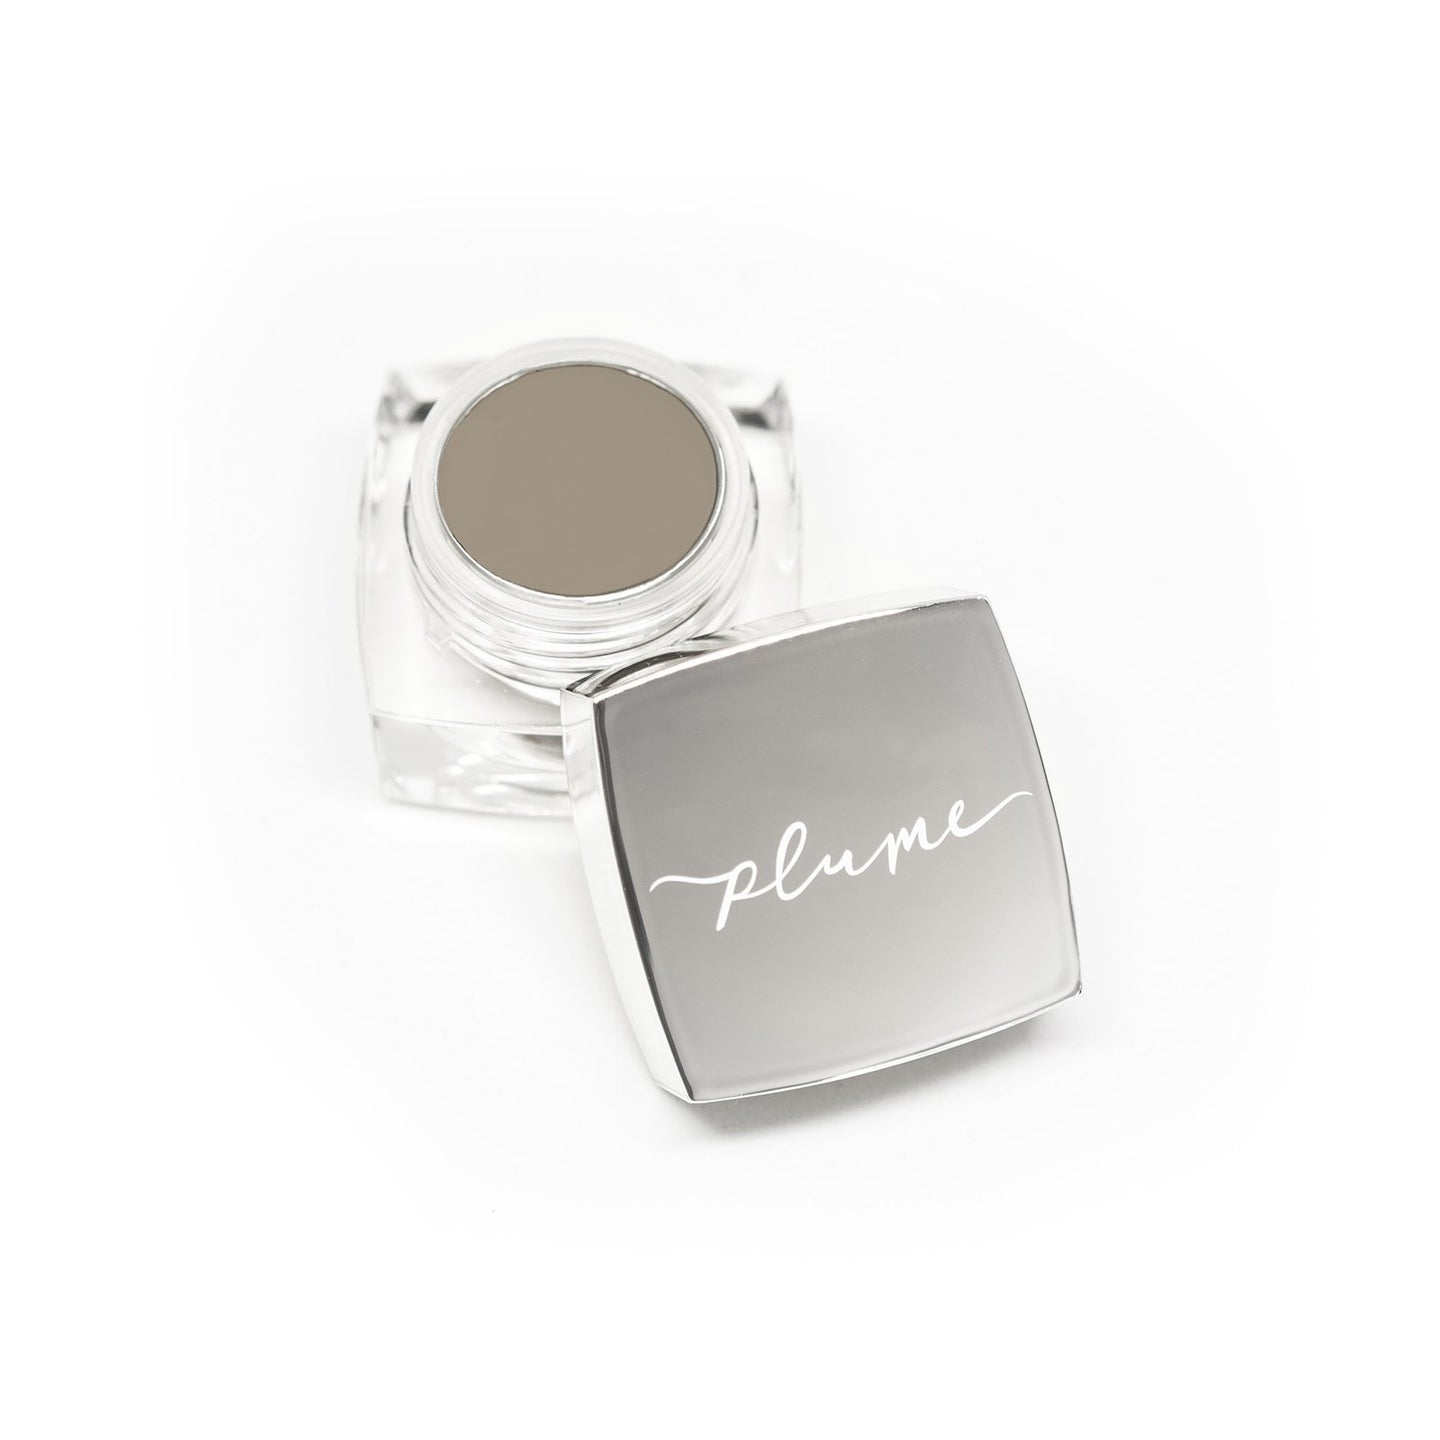 Shop Nourish & Define Brow Pomade Golden Silk by Plume Science - Let's make it a trend #explorebeautiful eyebrows